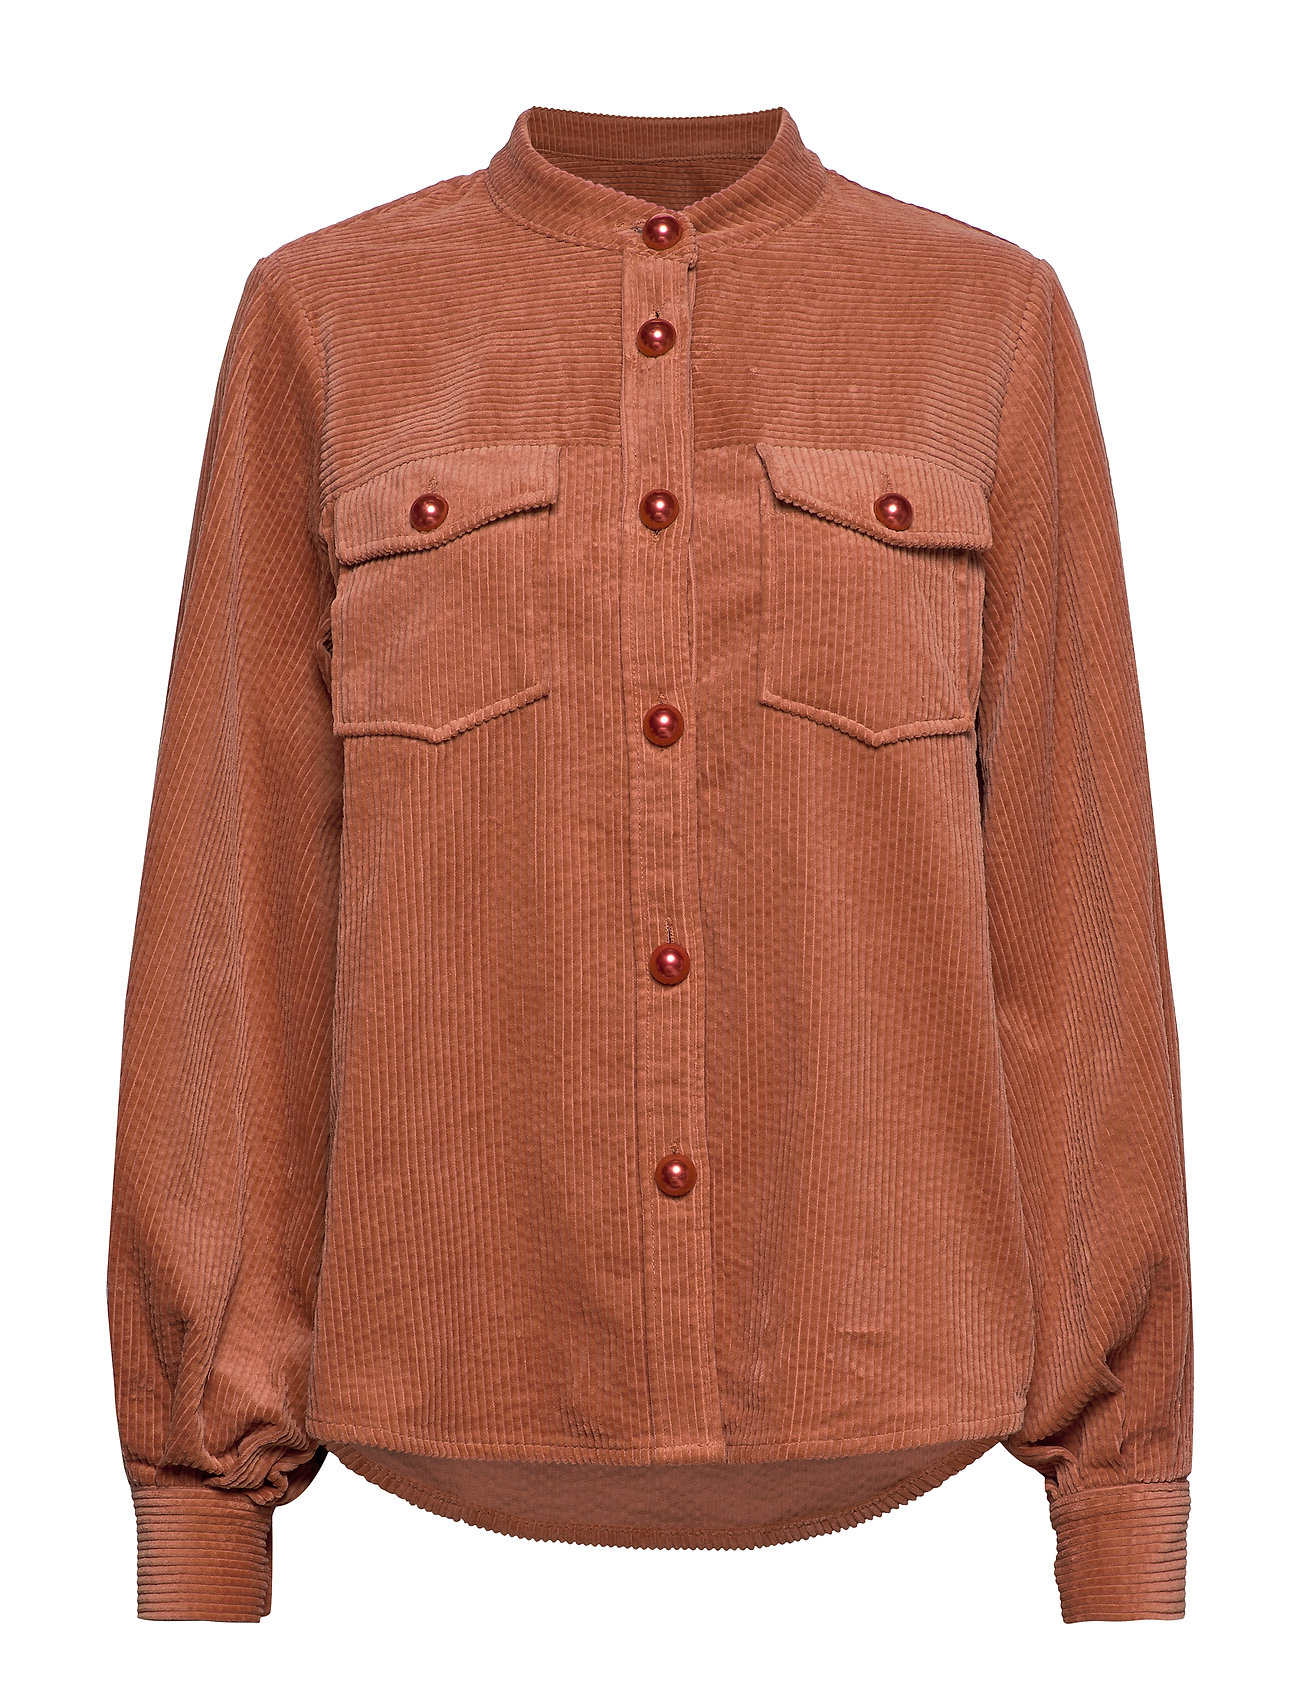 Coster Copenhagen Jacket in corduroy - ORANGE MIST